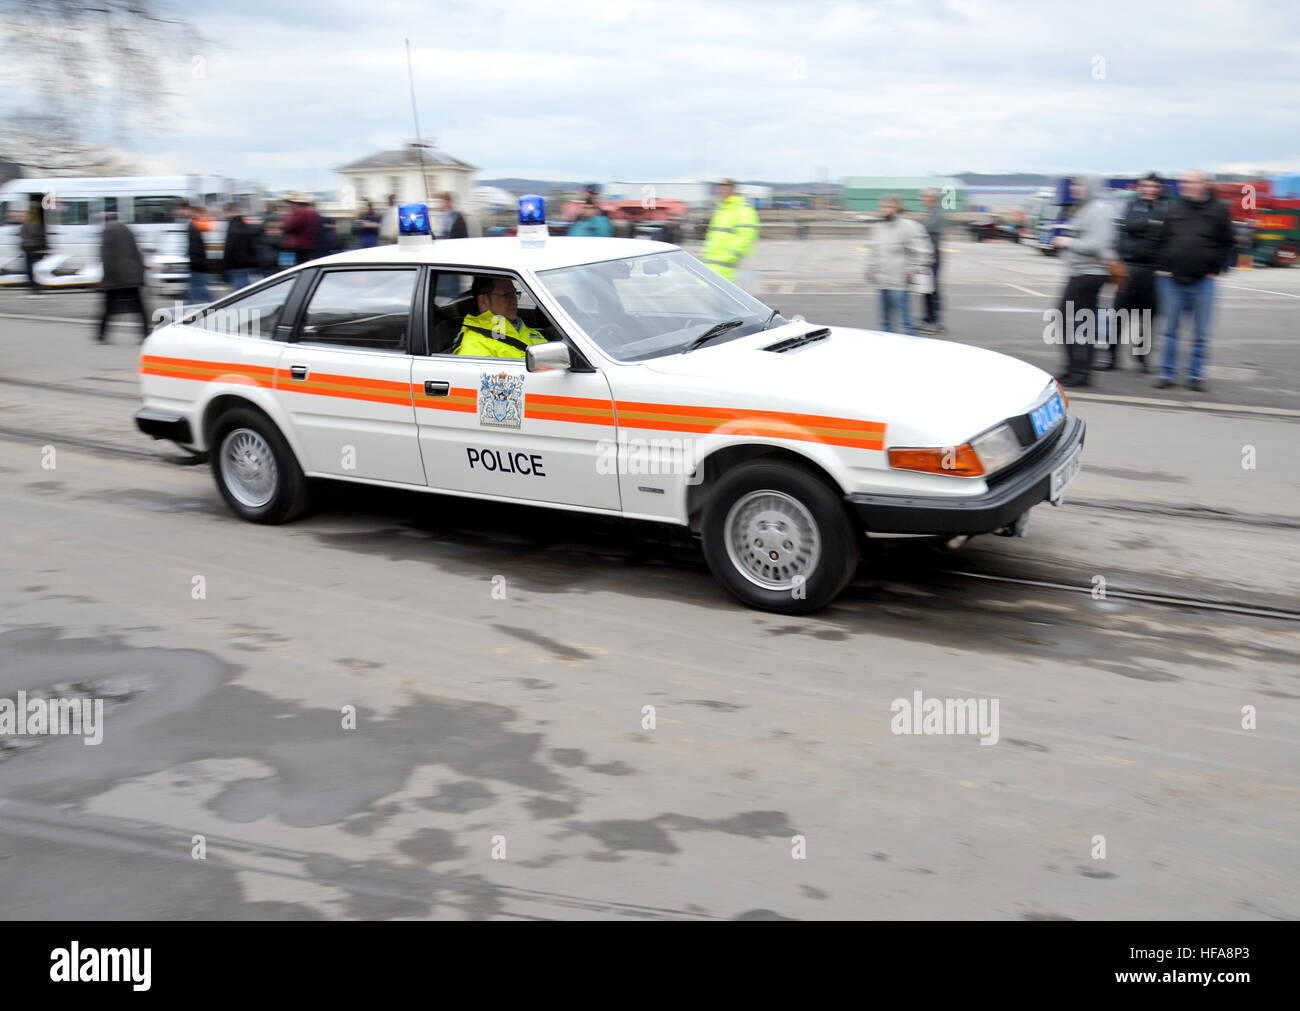 Rover sd1 classic british police car stock image